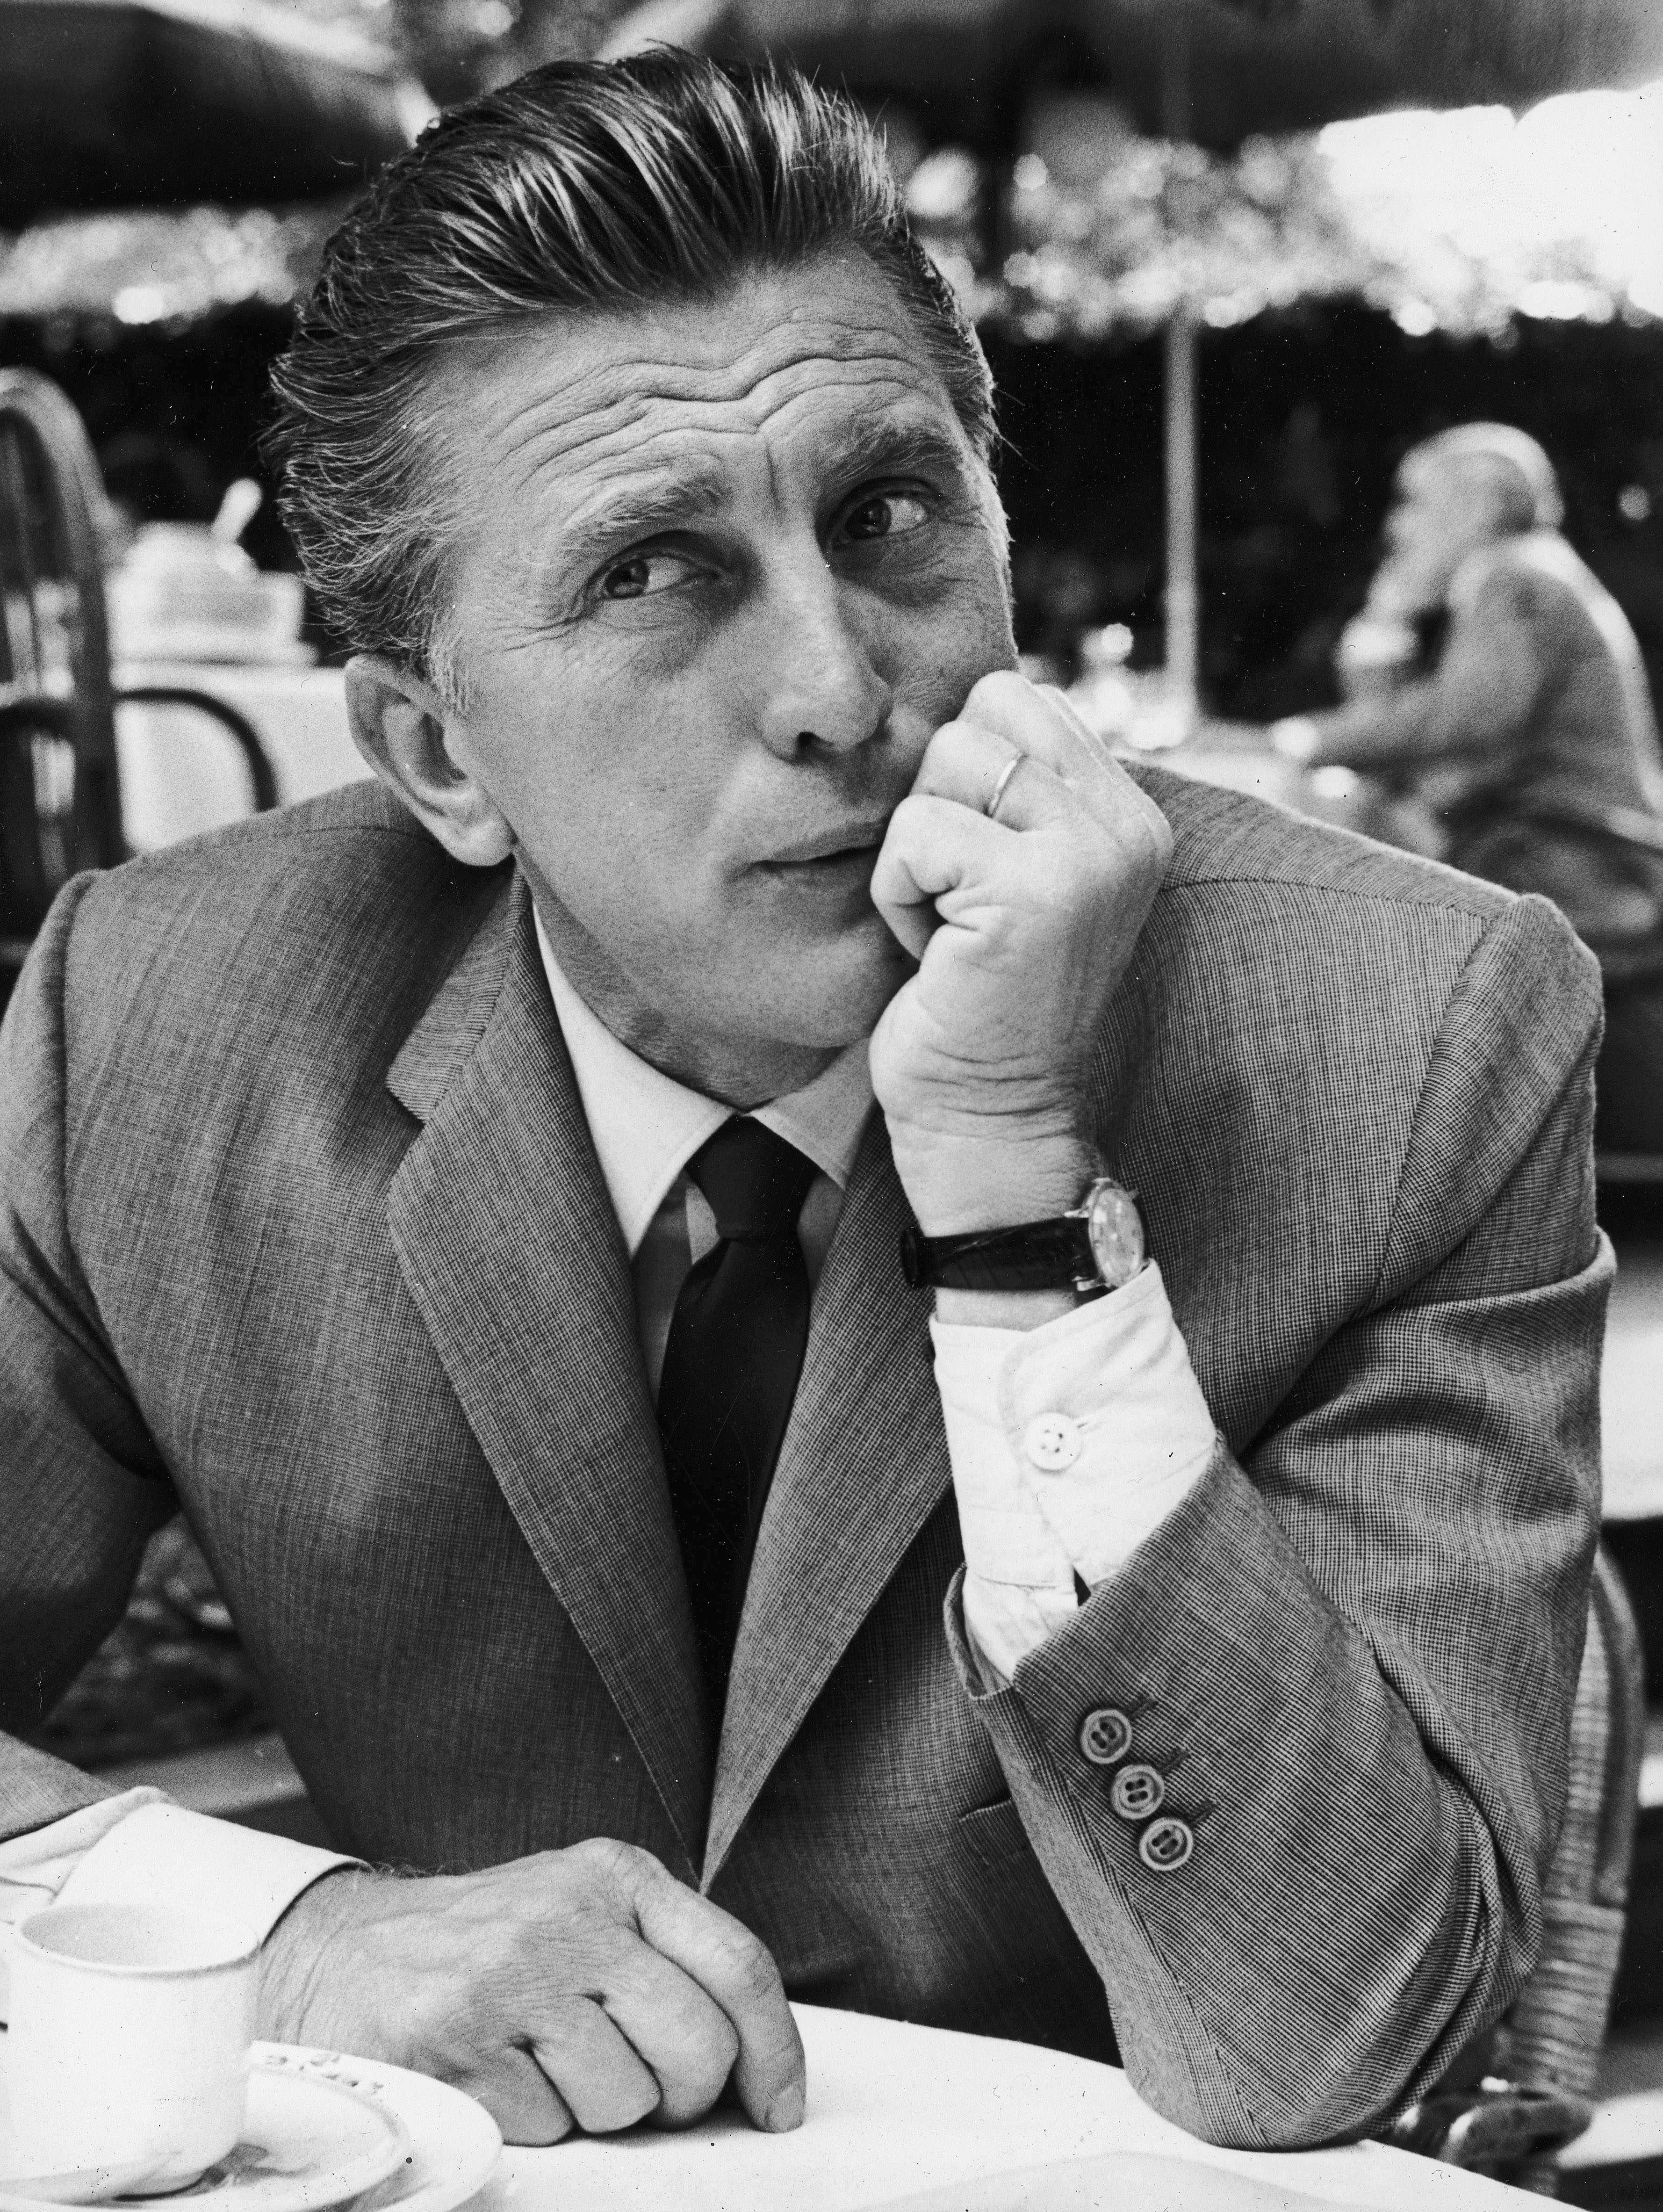 Kirk Douglas (born in 1916), American actor. (Photo by Jean-Regis Rouston/Roger Viollet/Getty Images)